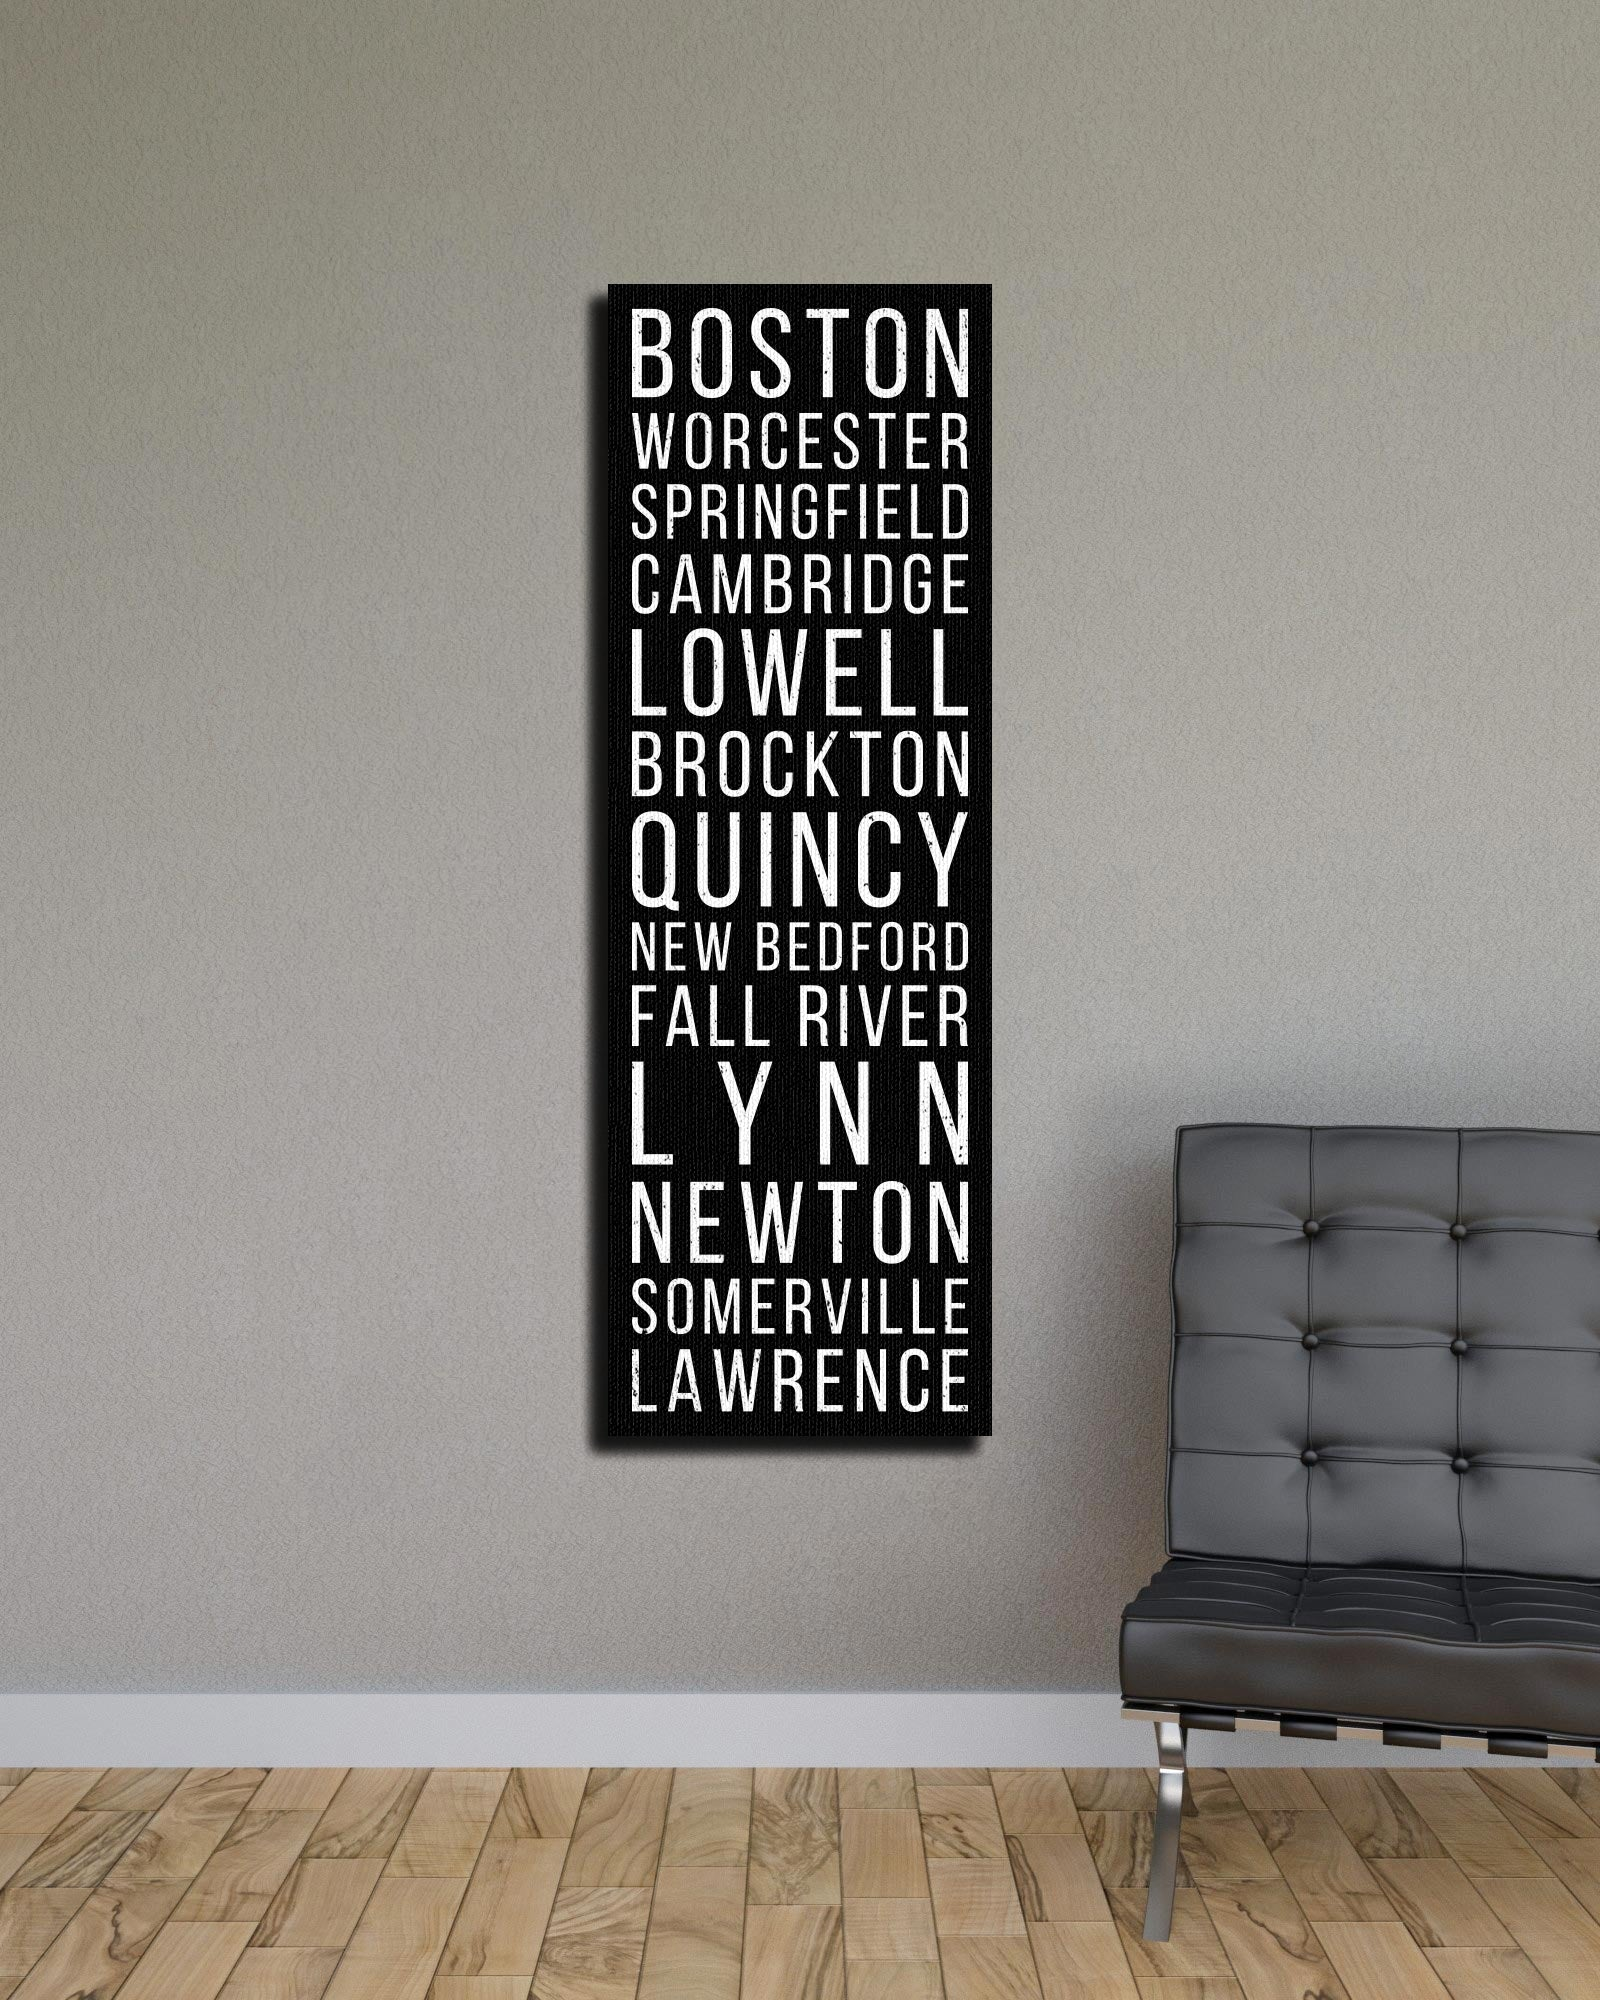 Massachusetts Boston Worcester Springfield Bus Scroll Subway Canvas Print